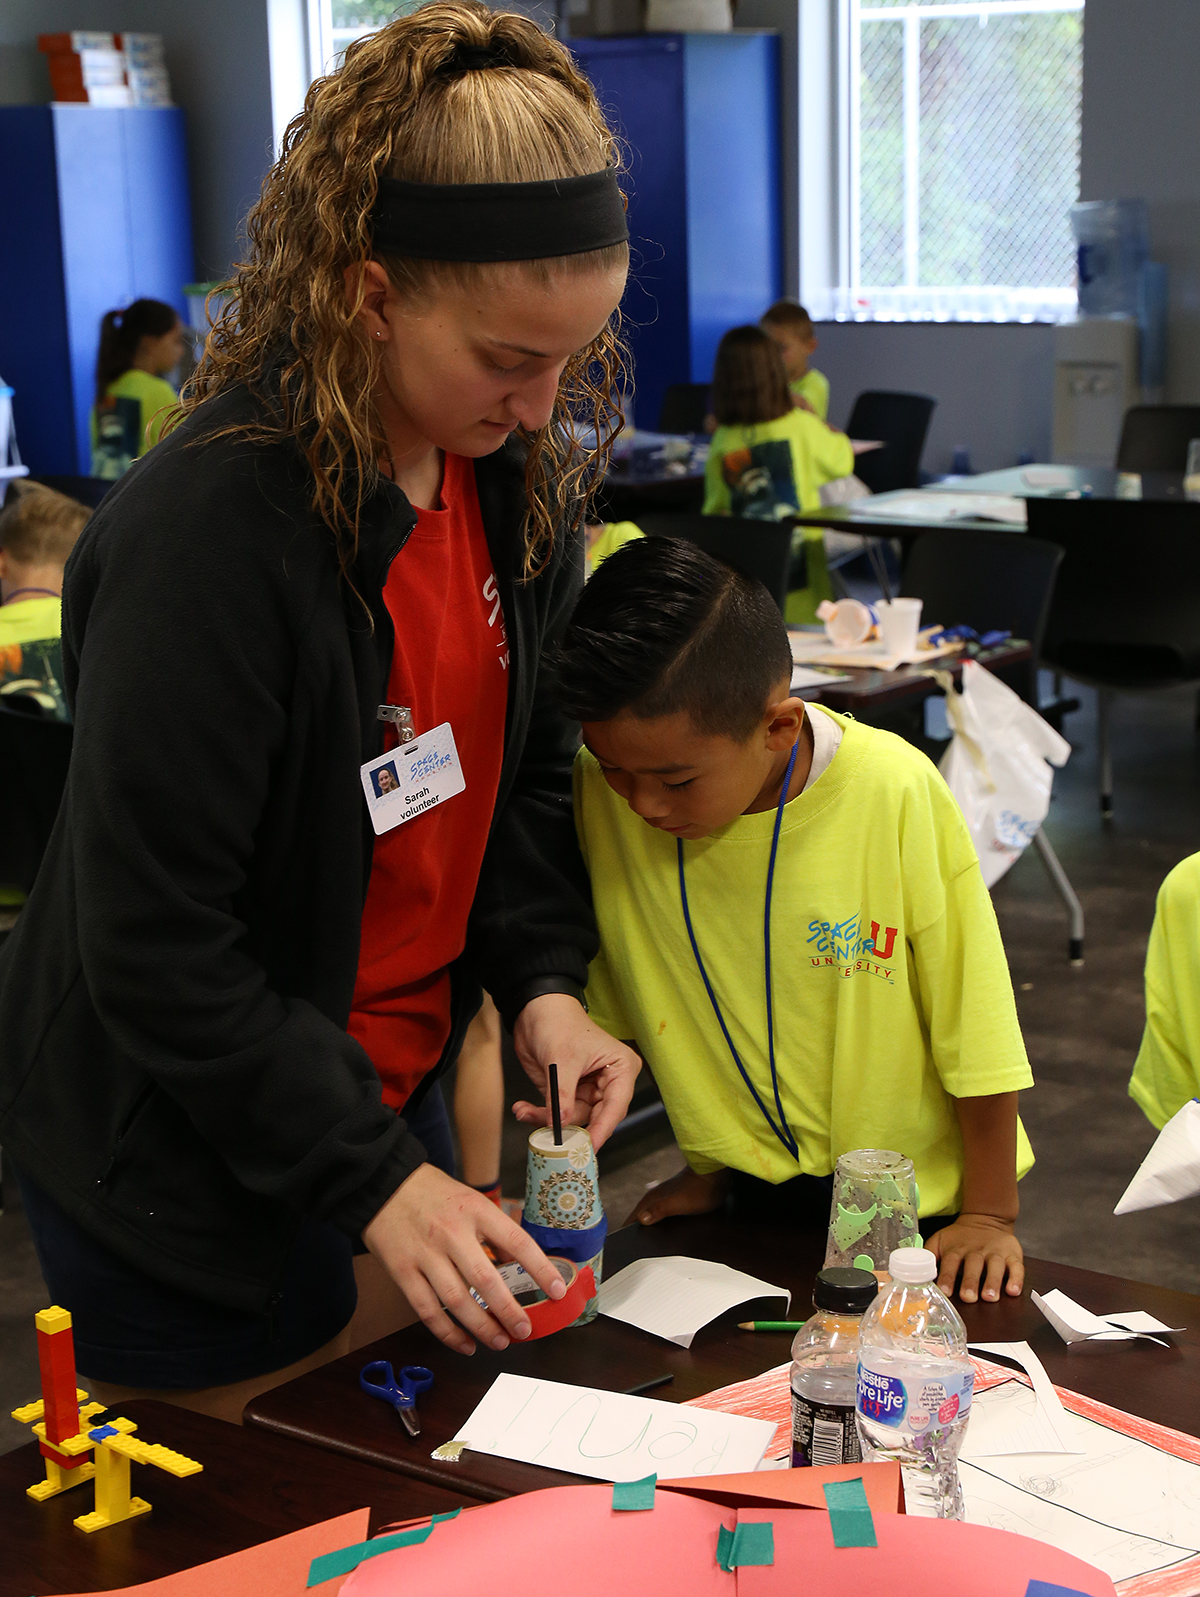 Volunteer helps students involved in an education program at the center.